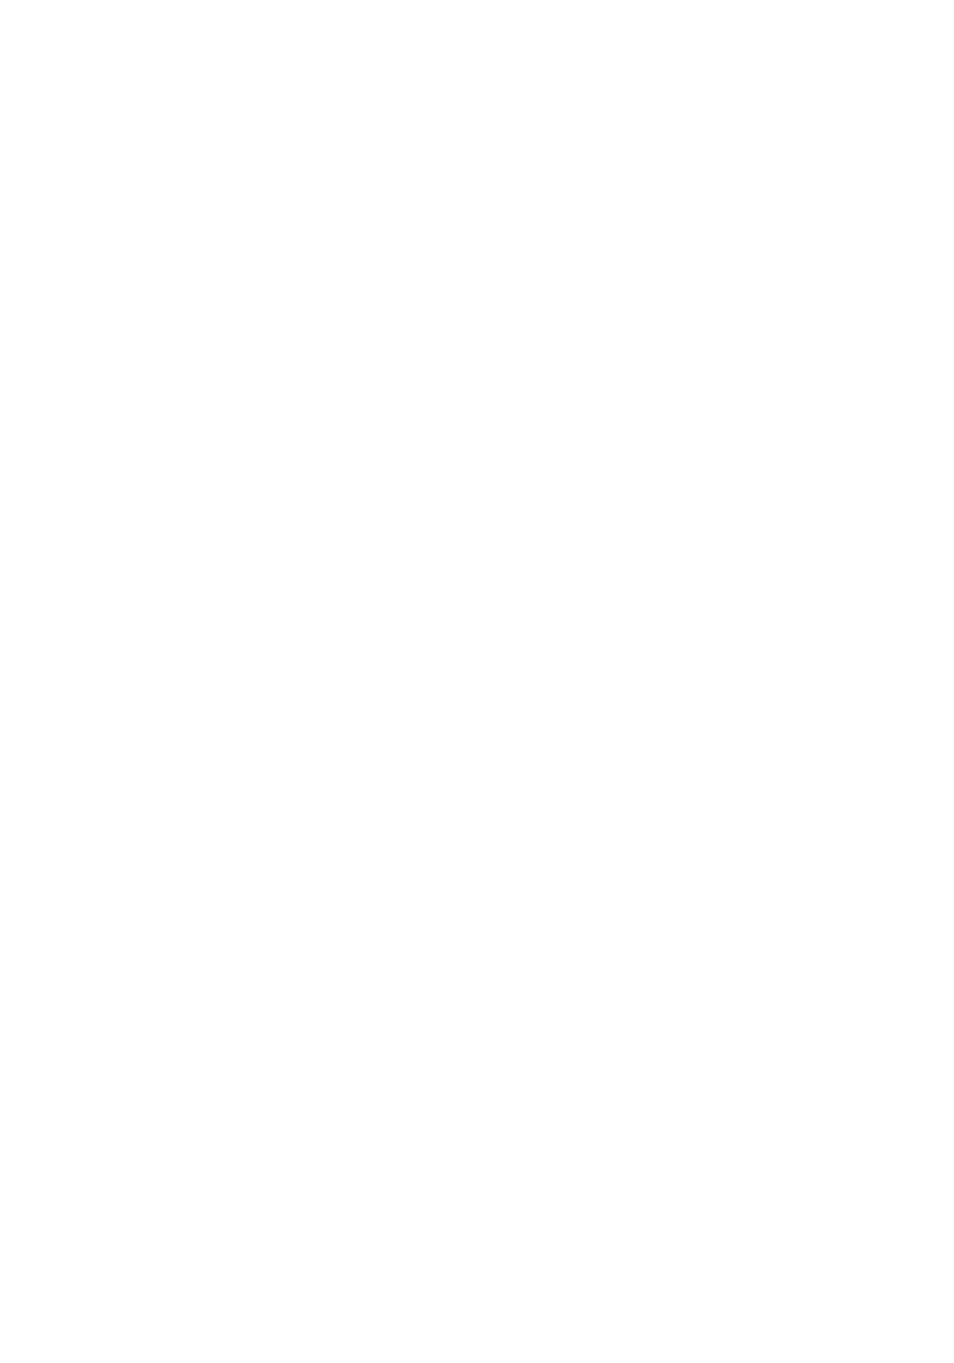 Audible Visual Alert Indicators Function Switch Channel